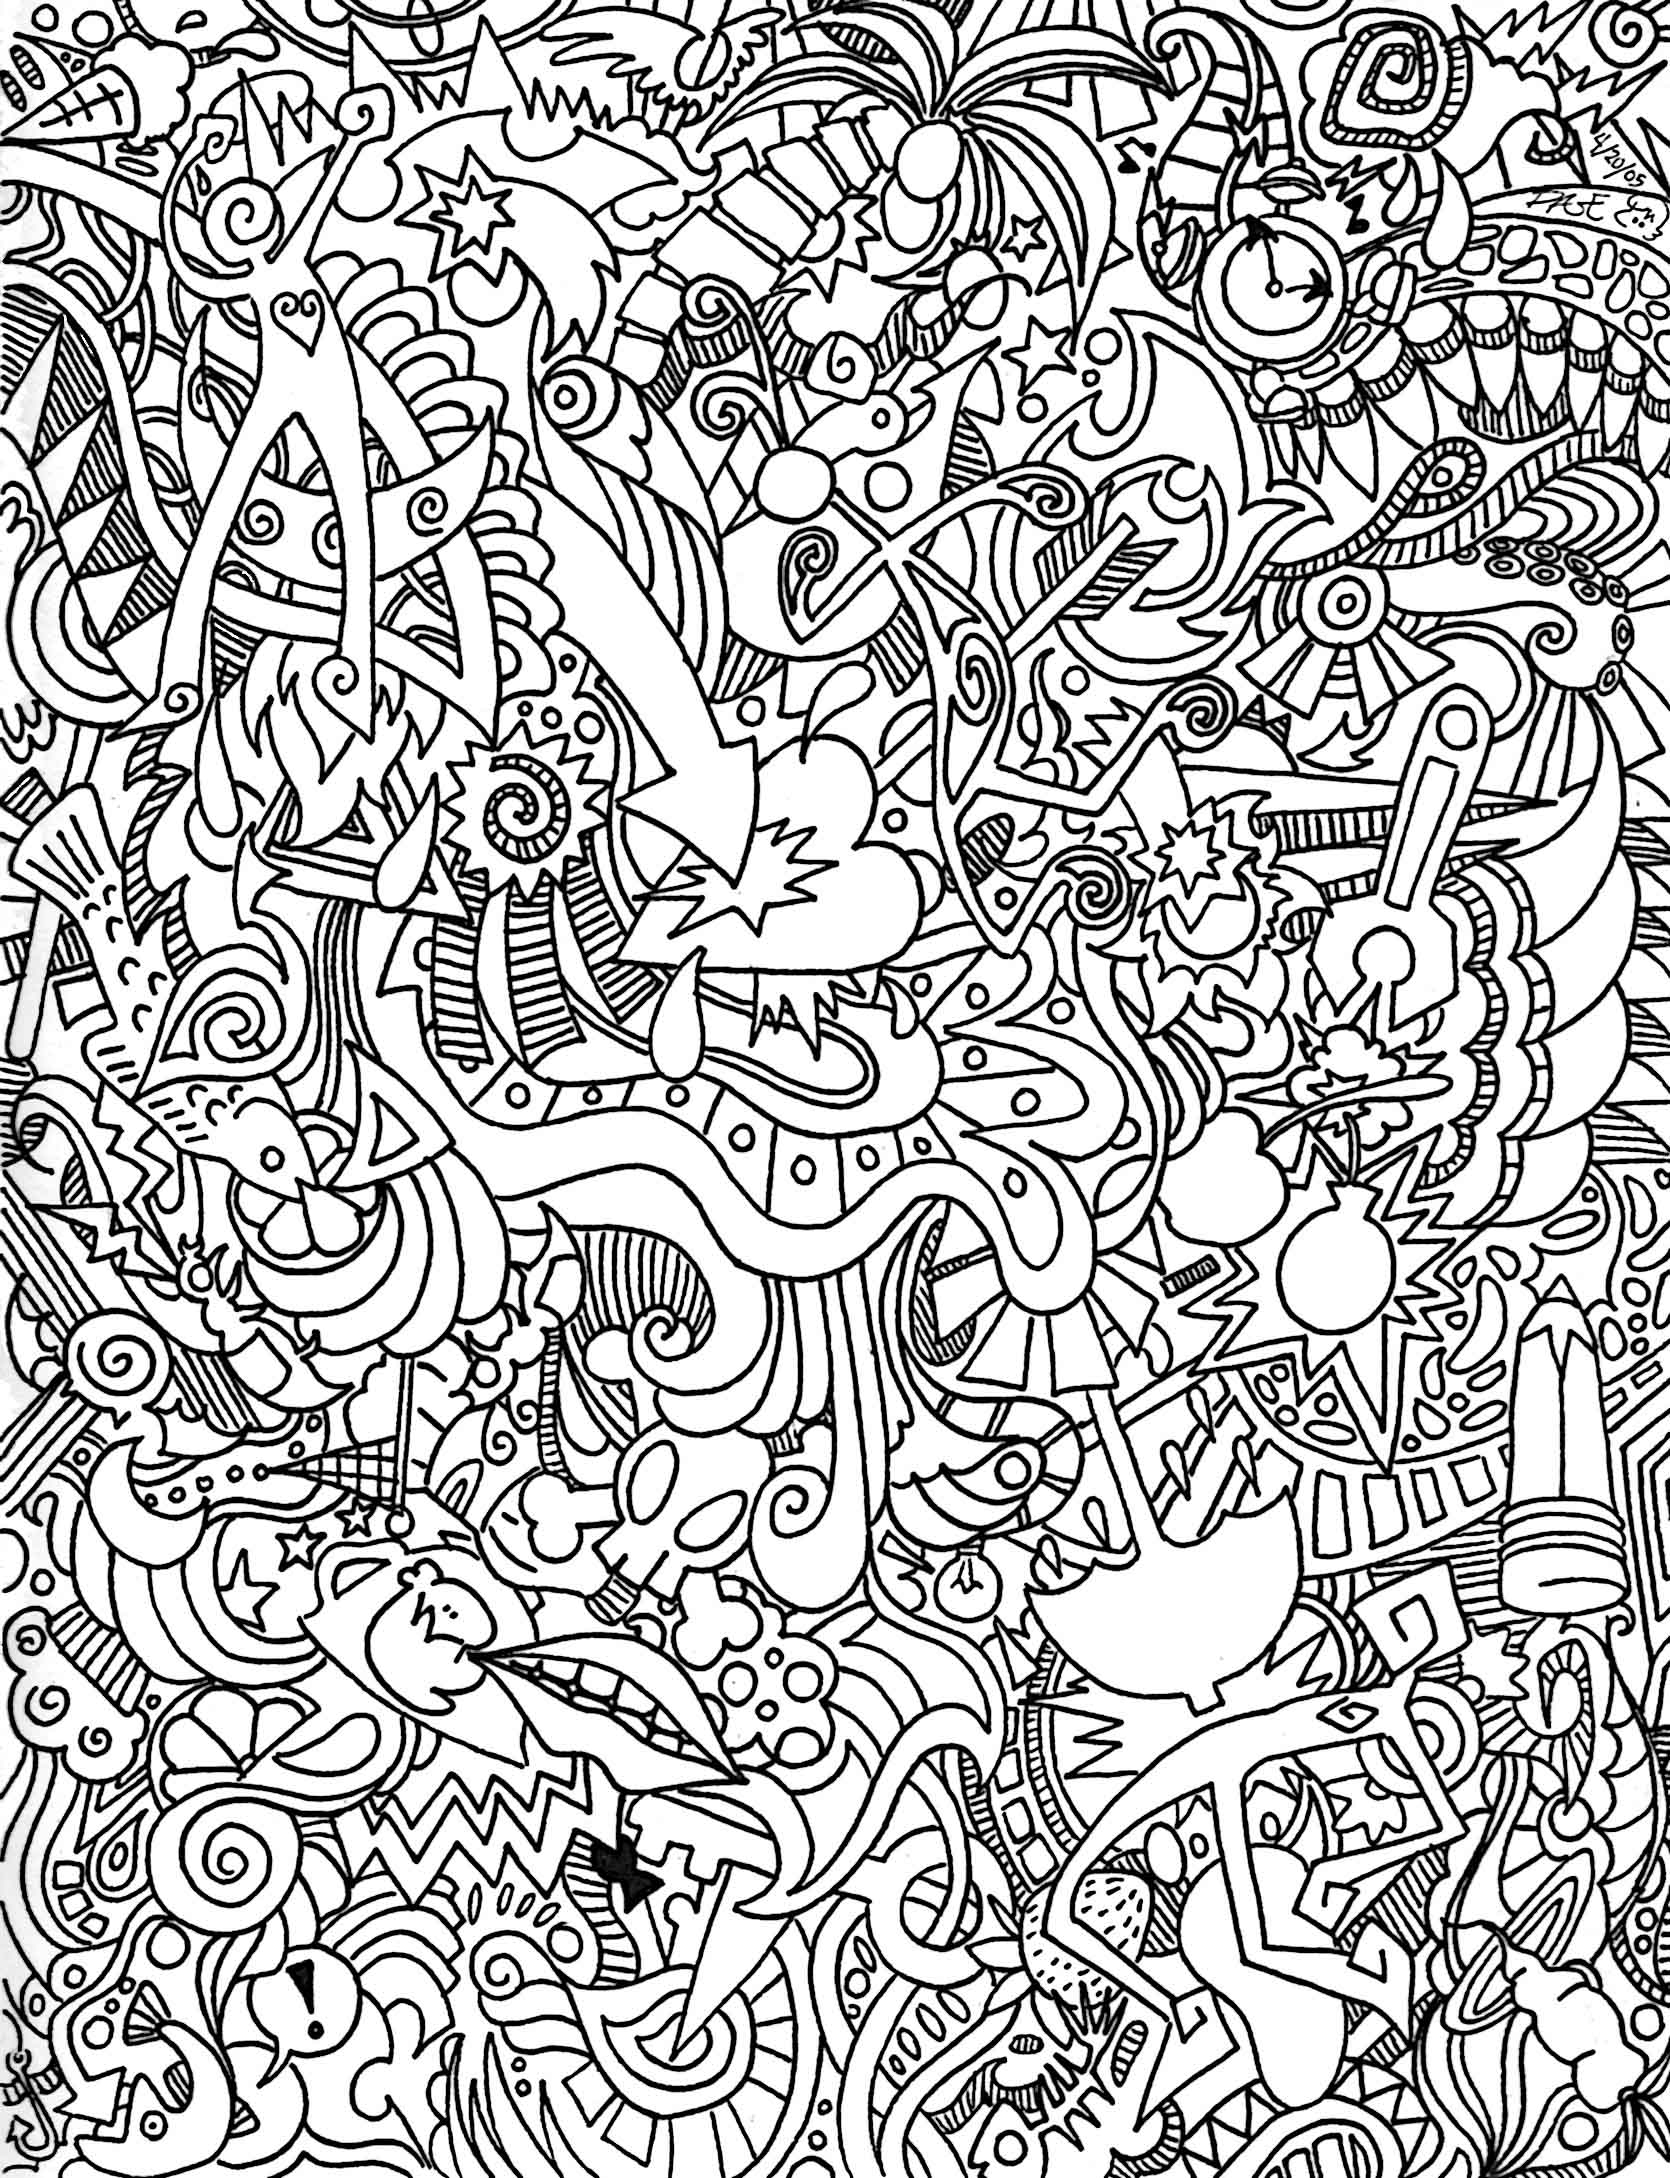 trippy coloring page trippy alice in wonderland coloring pages coloring home page coloring trippy